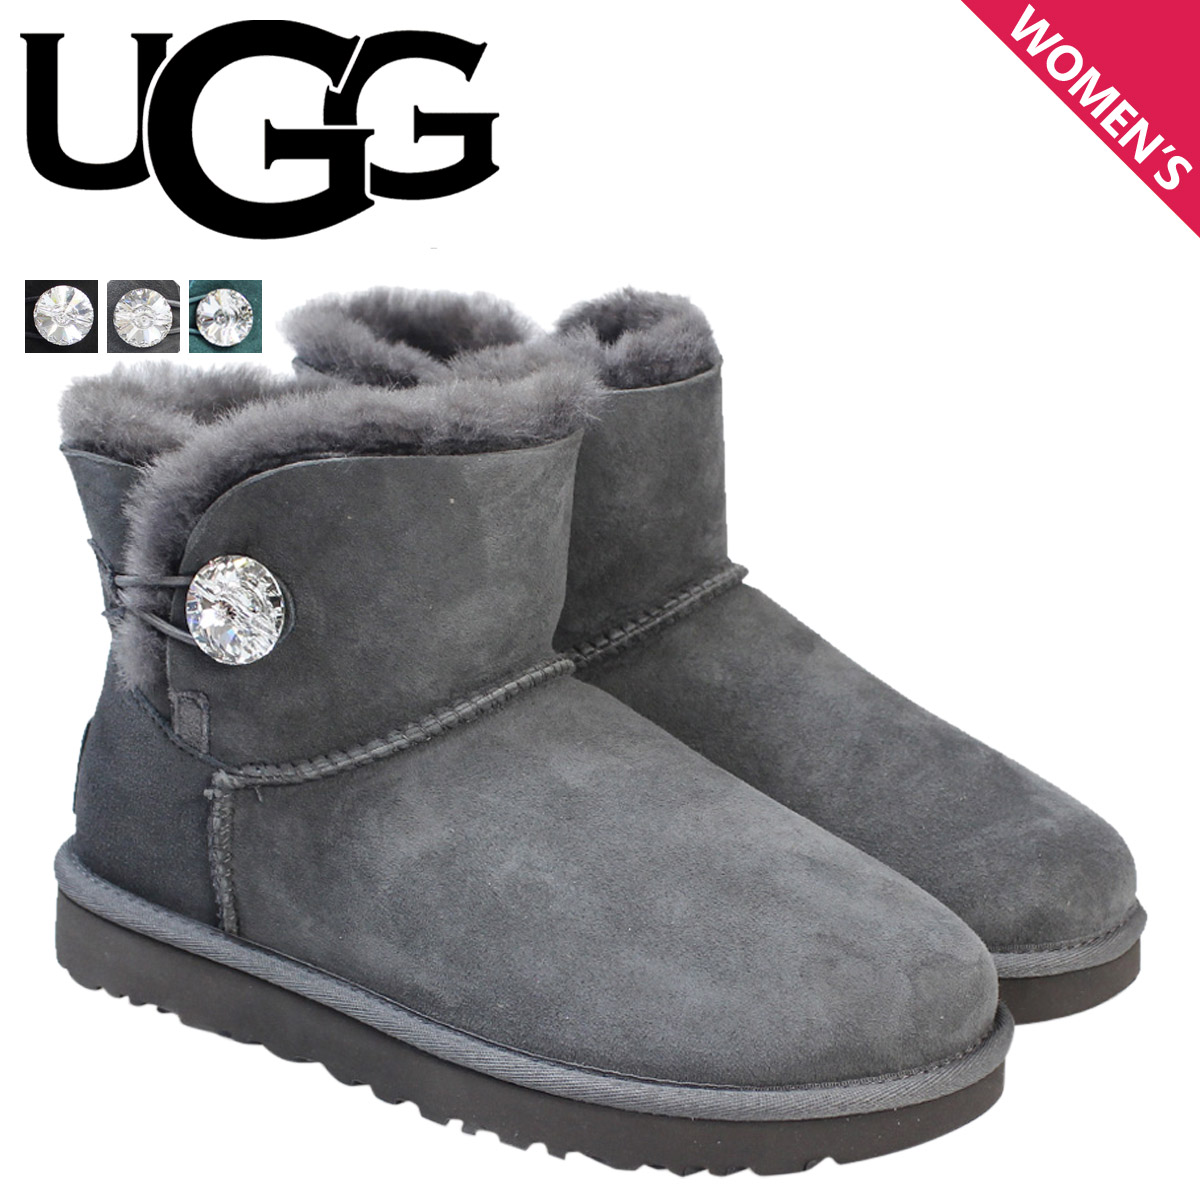 where to buy uggs in stores